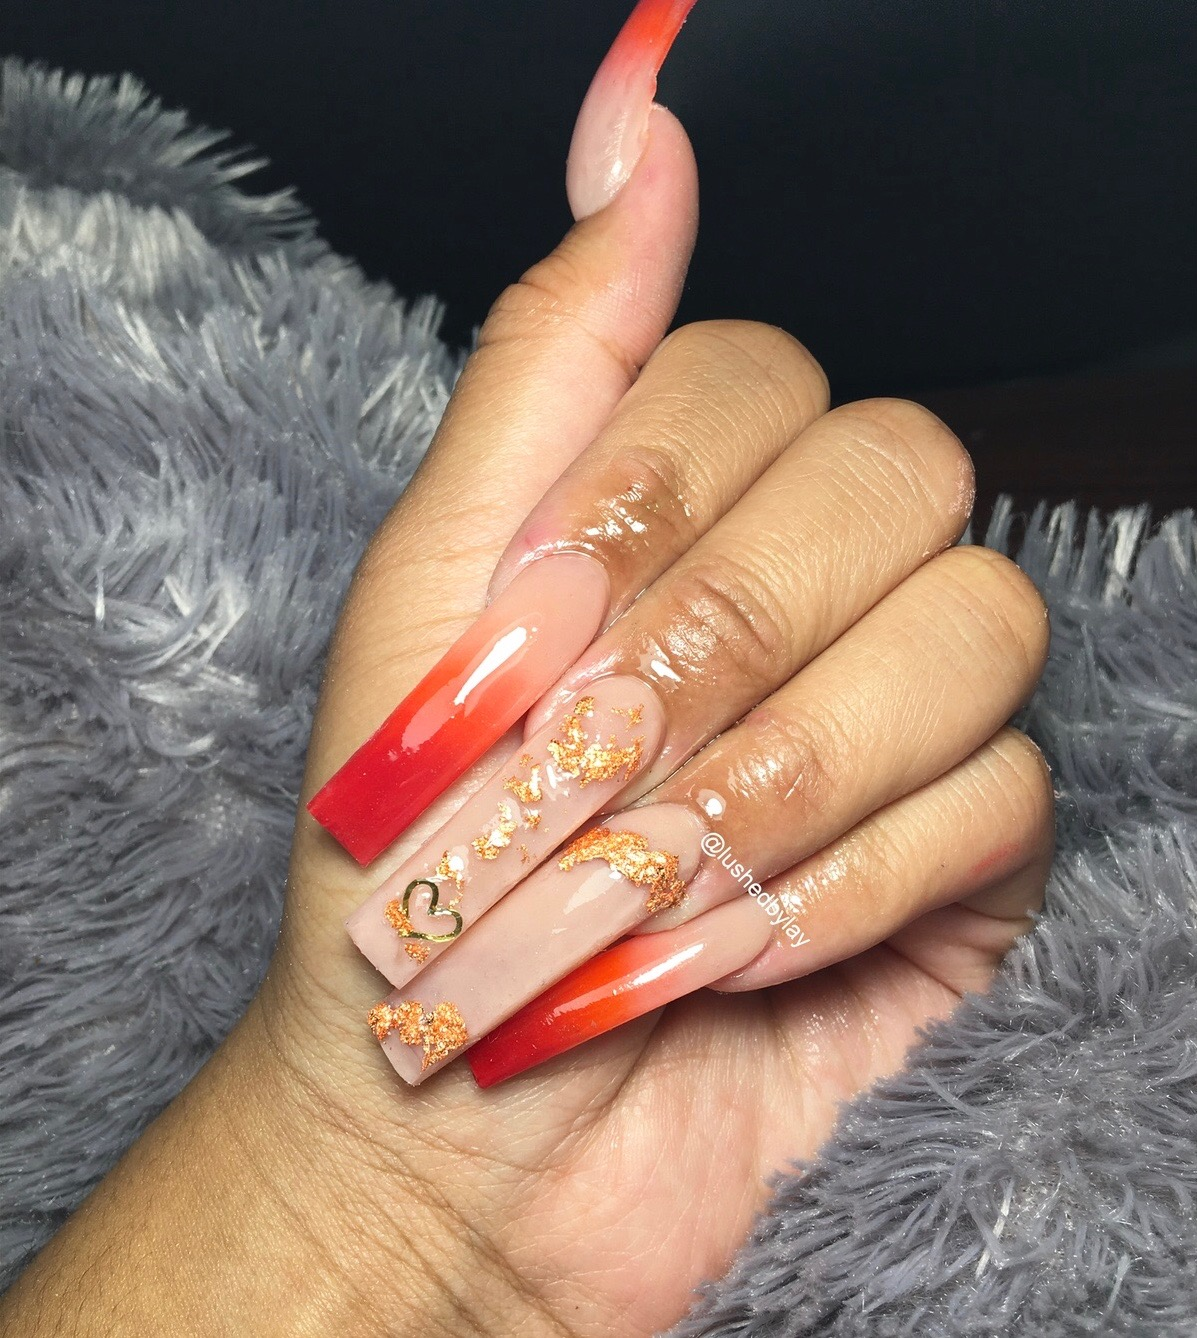 Pin on Summer nails in 2020 | Long acrylic nails, Coffin nails designs, Best acrylic nails